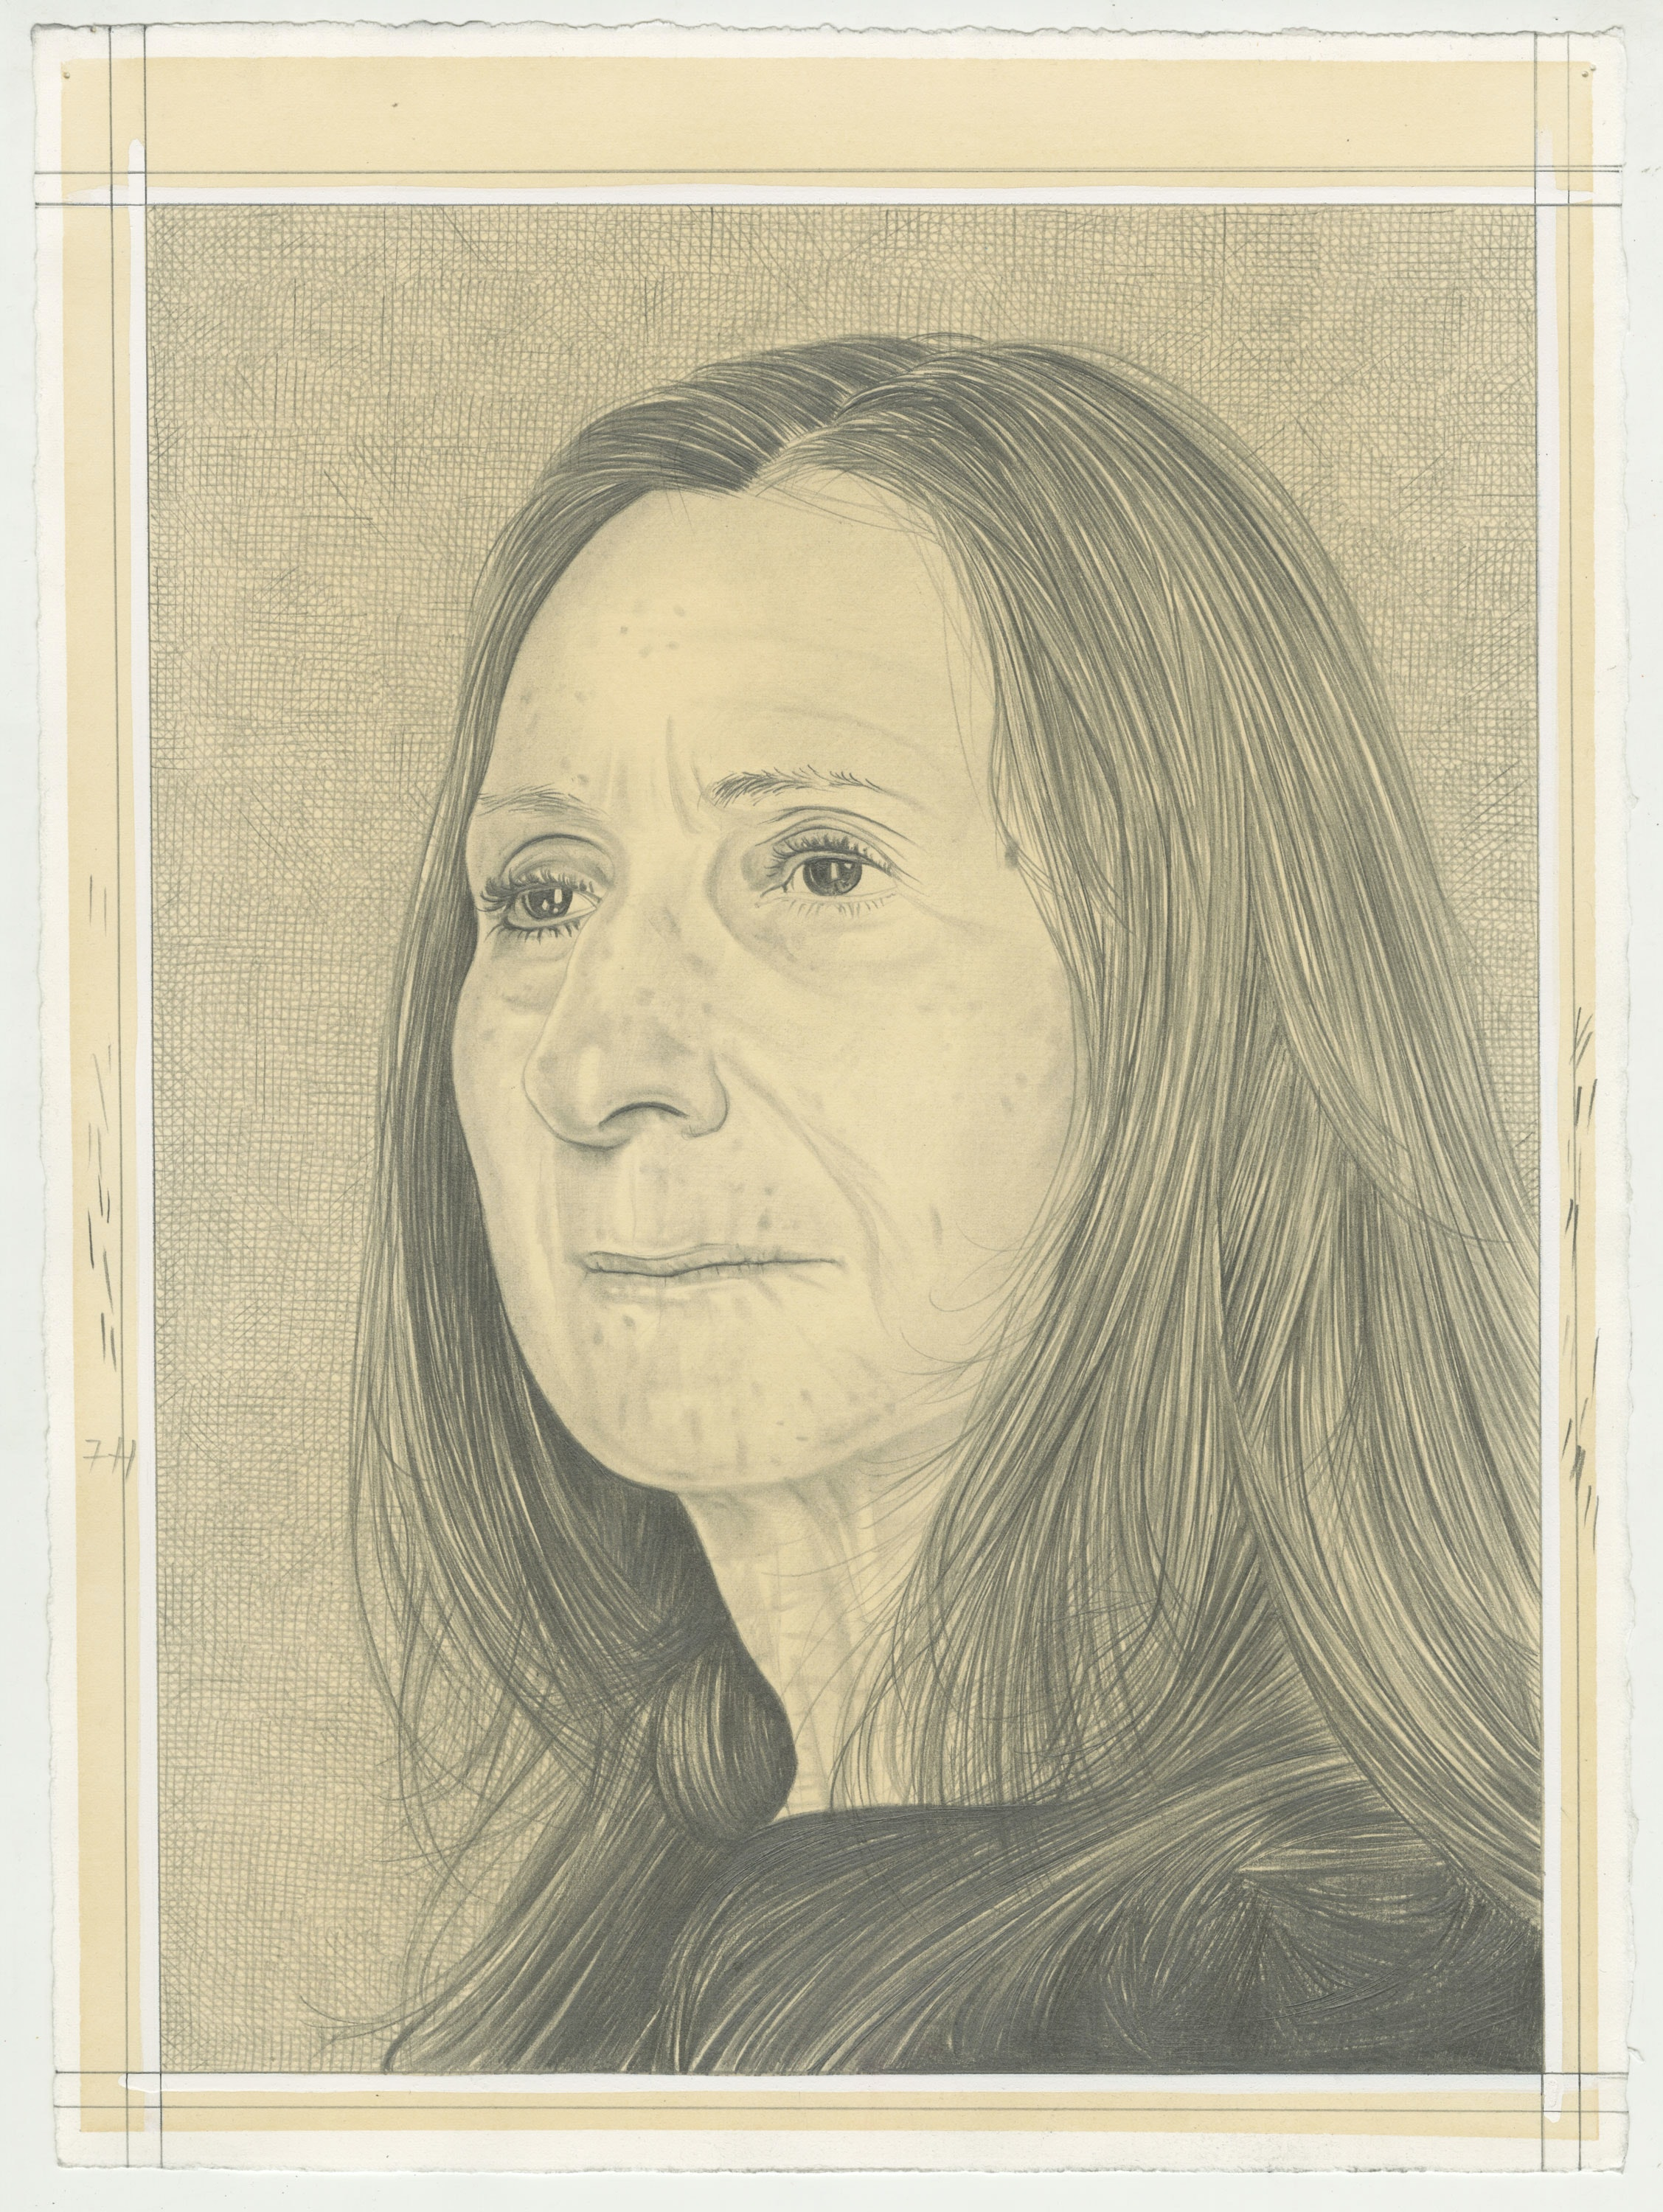 Portrait of Norma Cole, pencil on paper by Phong H. Bui.